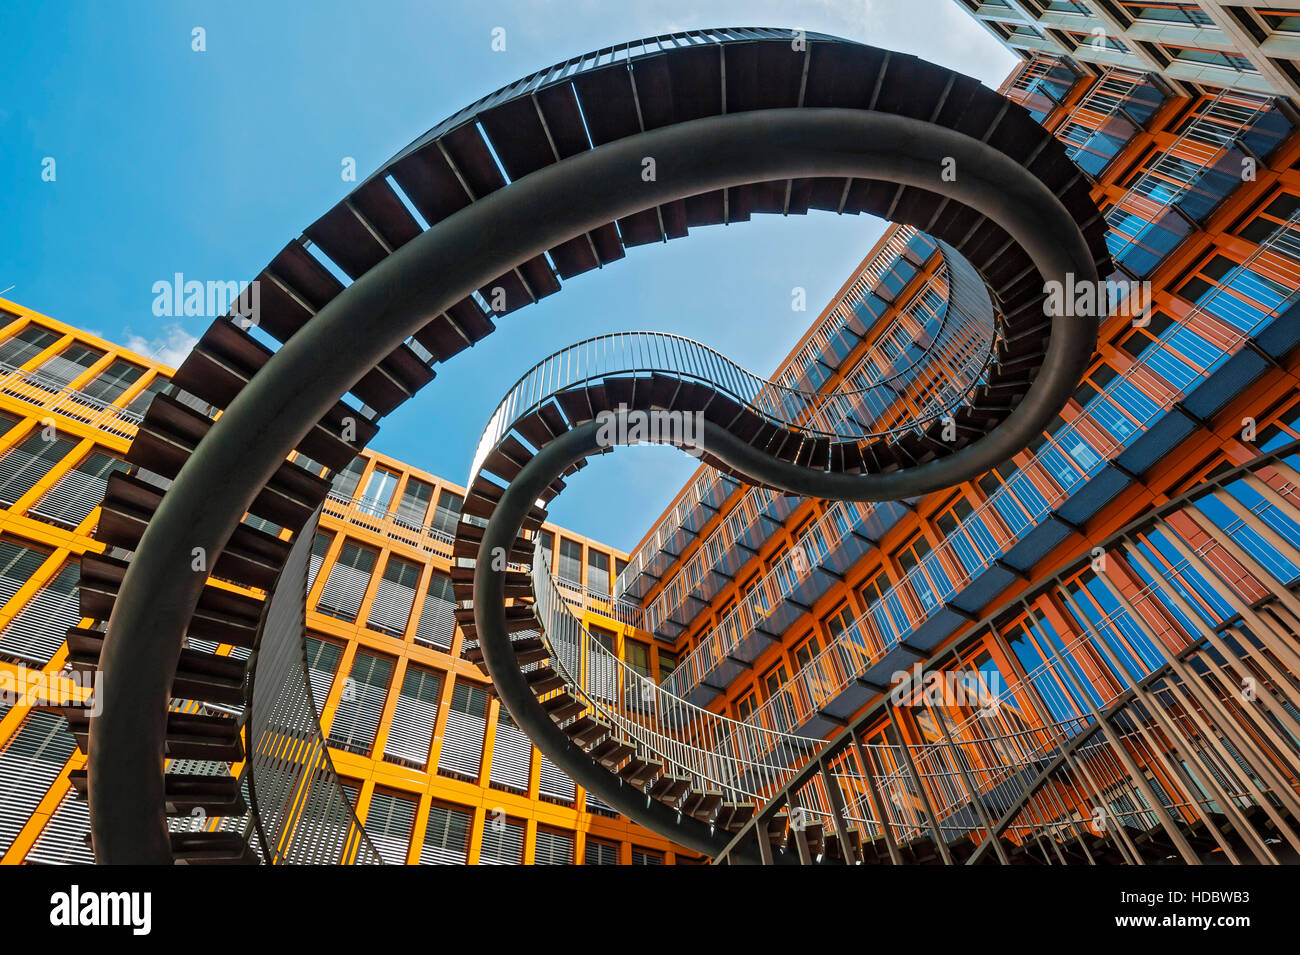 Endless staircase, double helix, sculpture, artist Olafur Eliasson, auditing firm KPMG, Westend, Schwantalerhöhe, - Stock Image